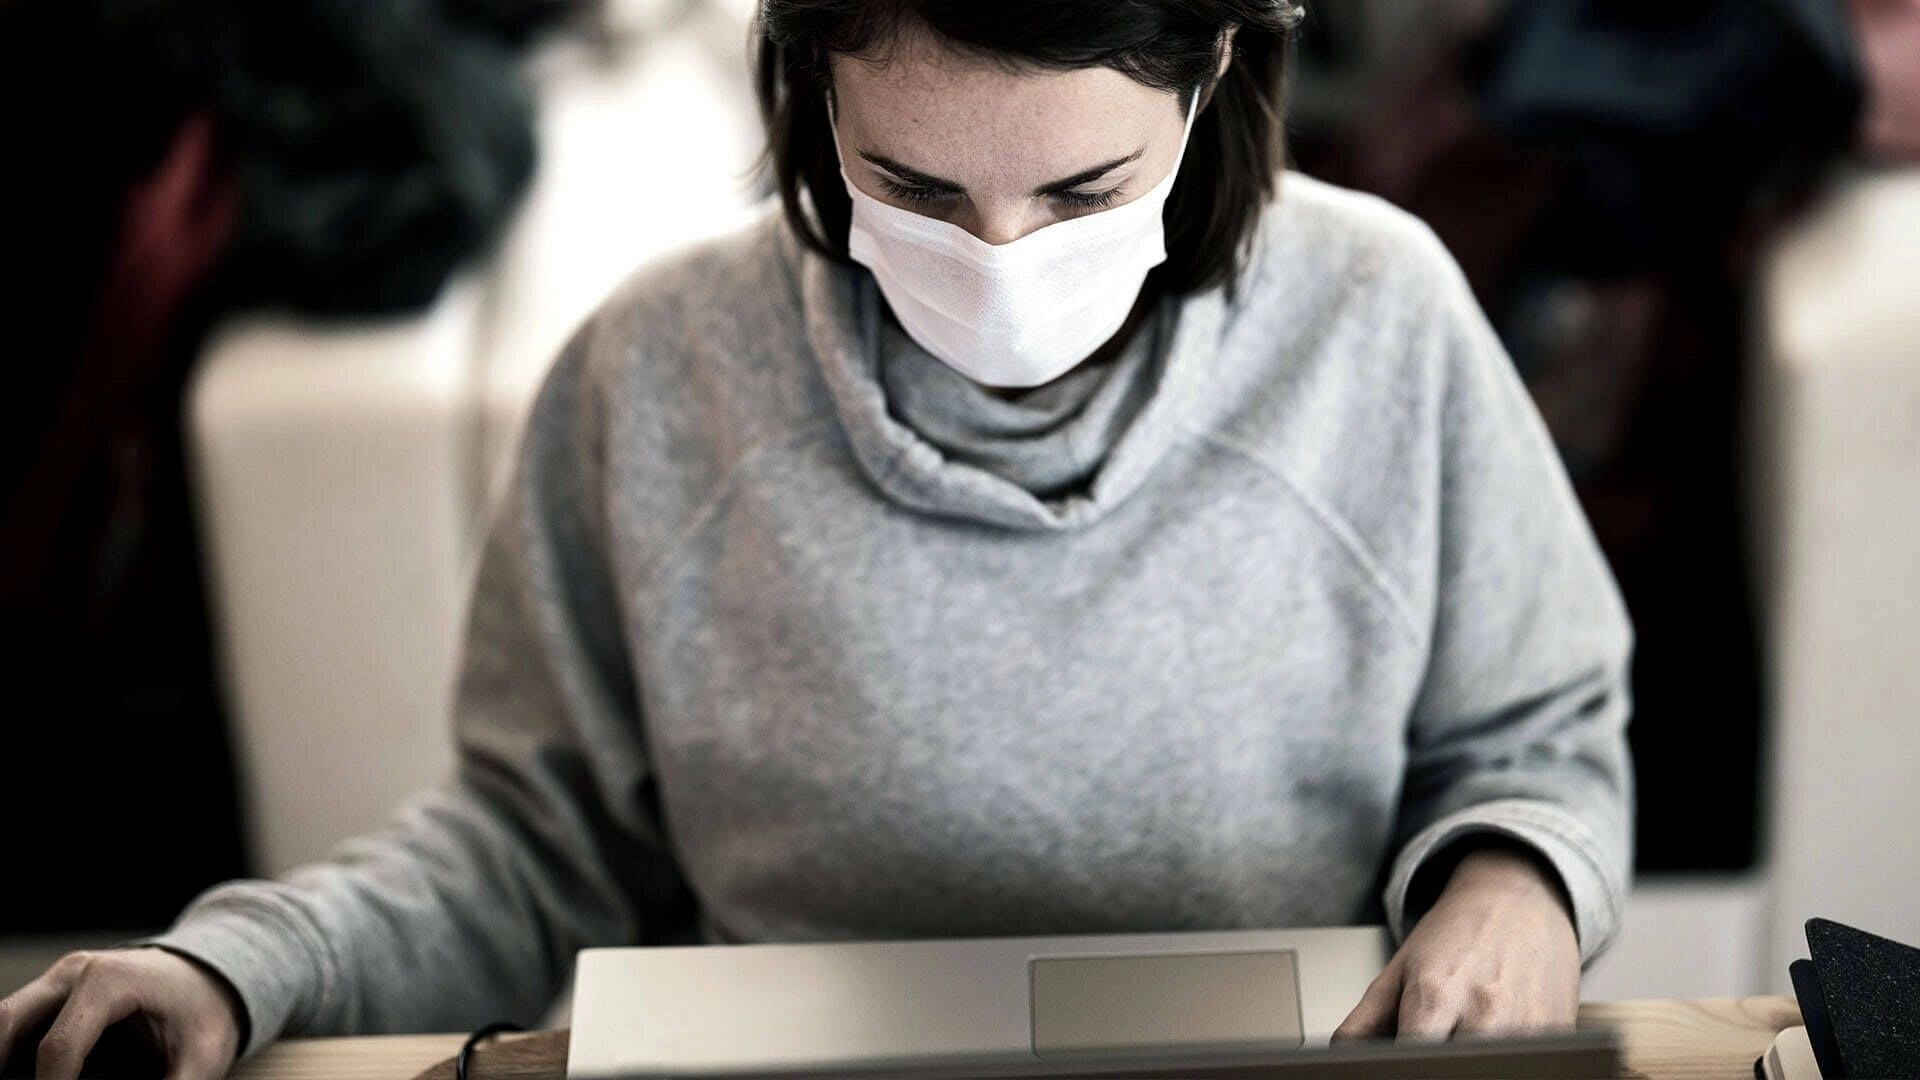 woman working with mouth cover on laptop